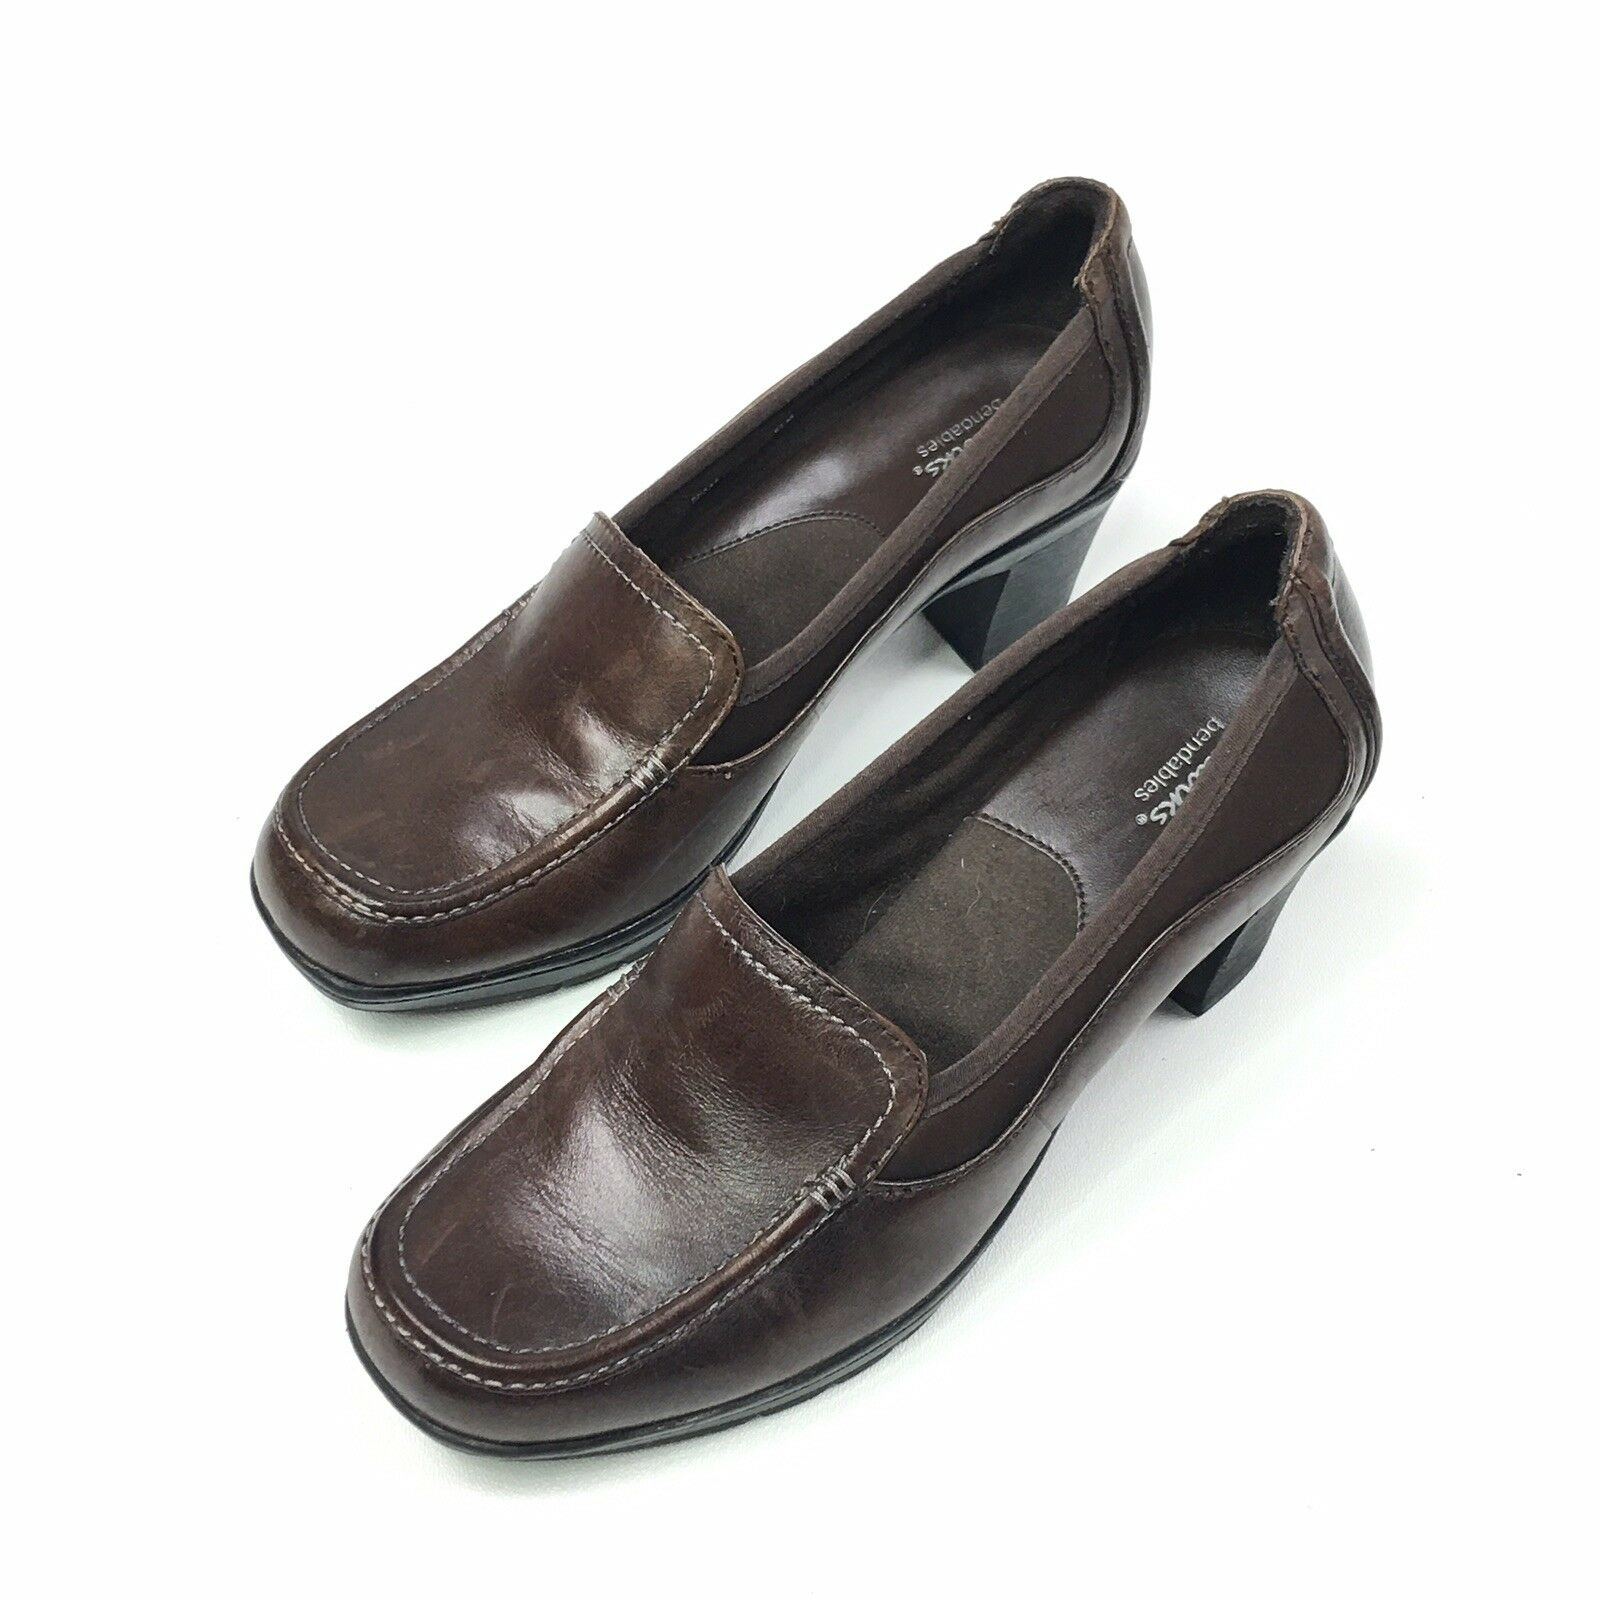 Clarks Bendables Brown Leather Loafers Slip On shoes 80428 Womens Size 6.5 M